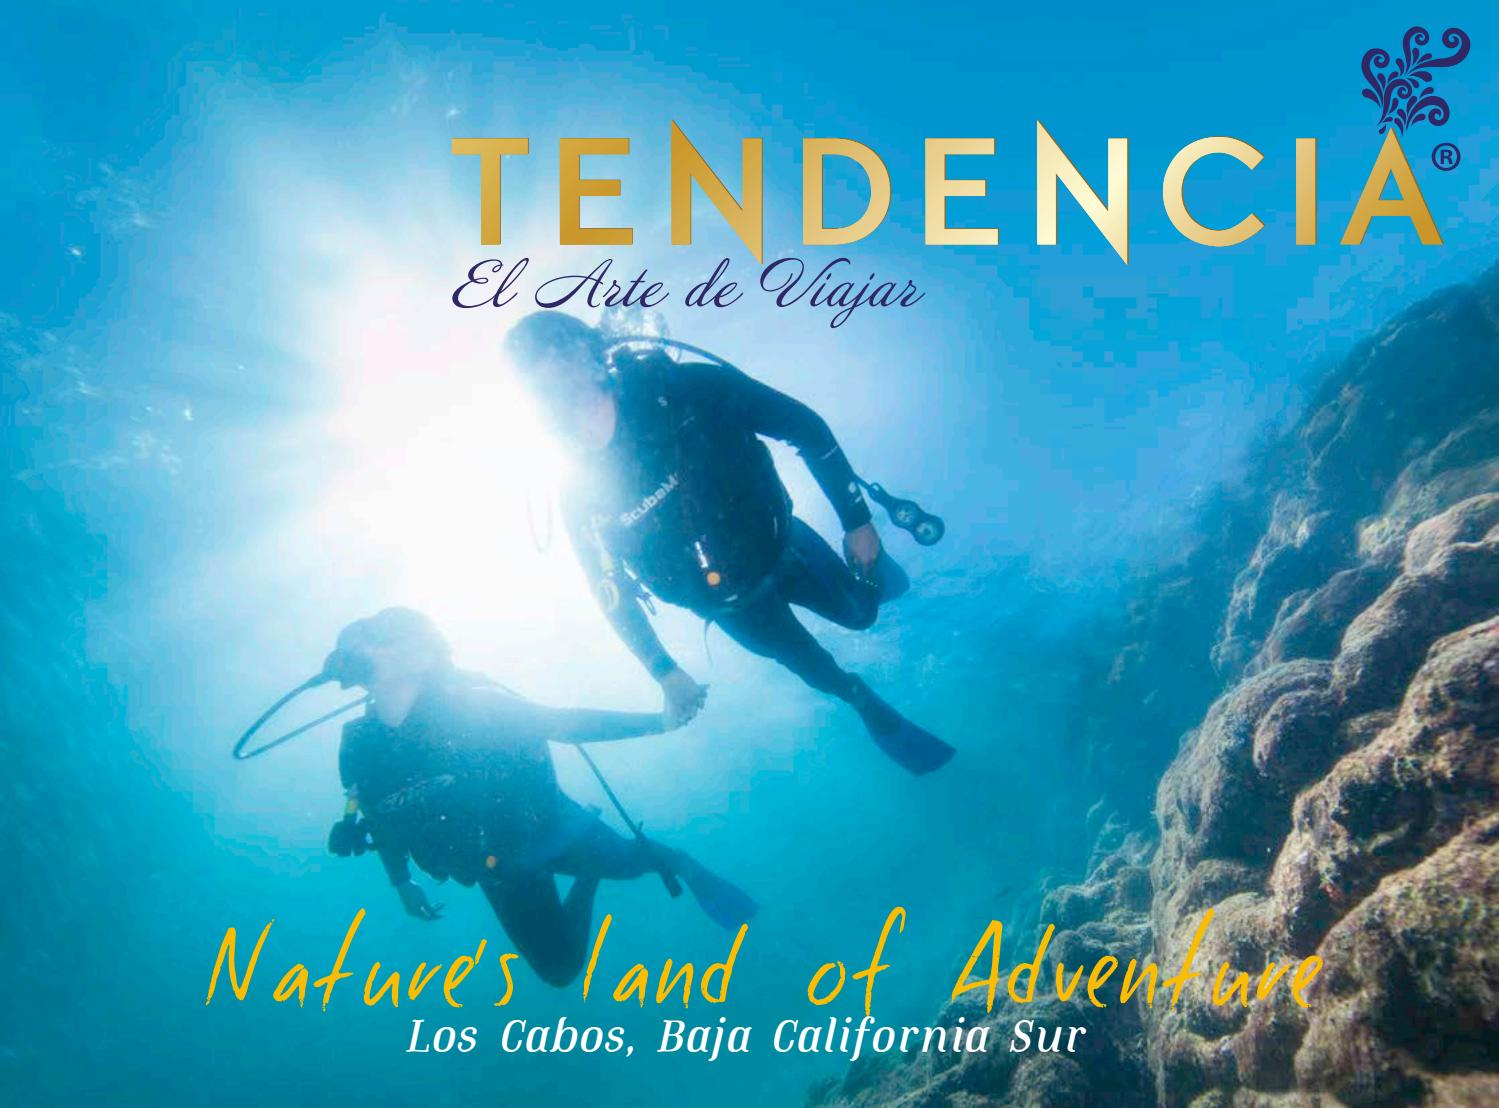 TENDENCIA Nature s Land of Adventure by Tendencia El Arte de Viajar - issuu 718ecf069cf